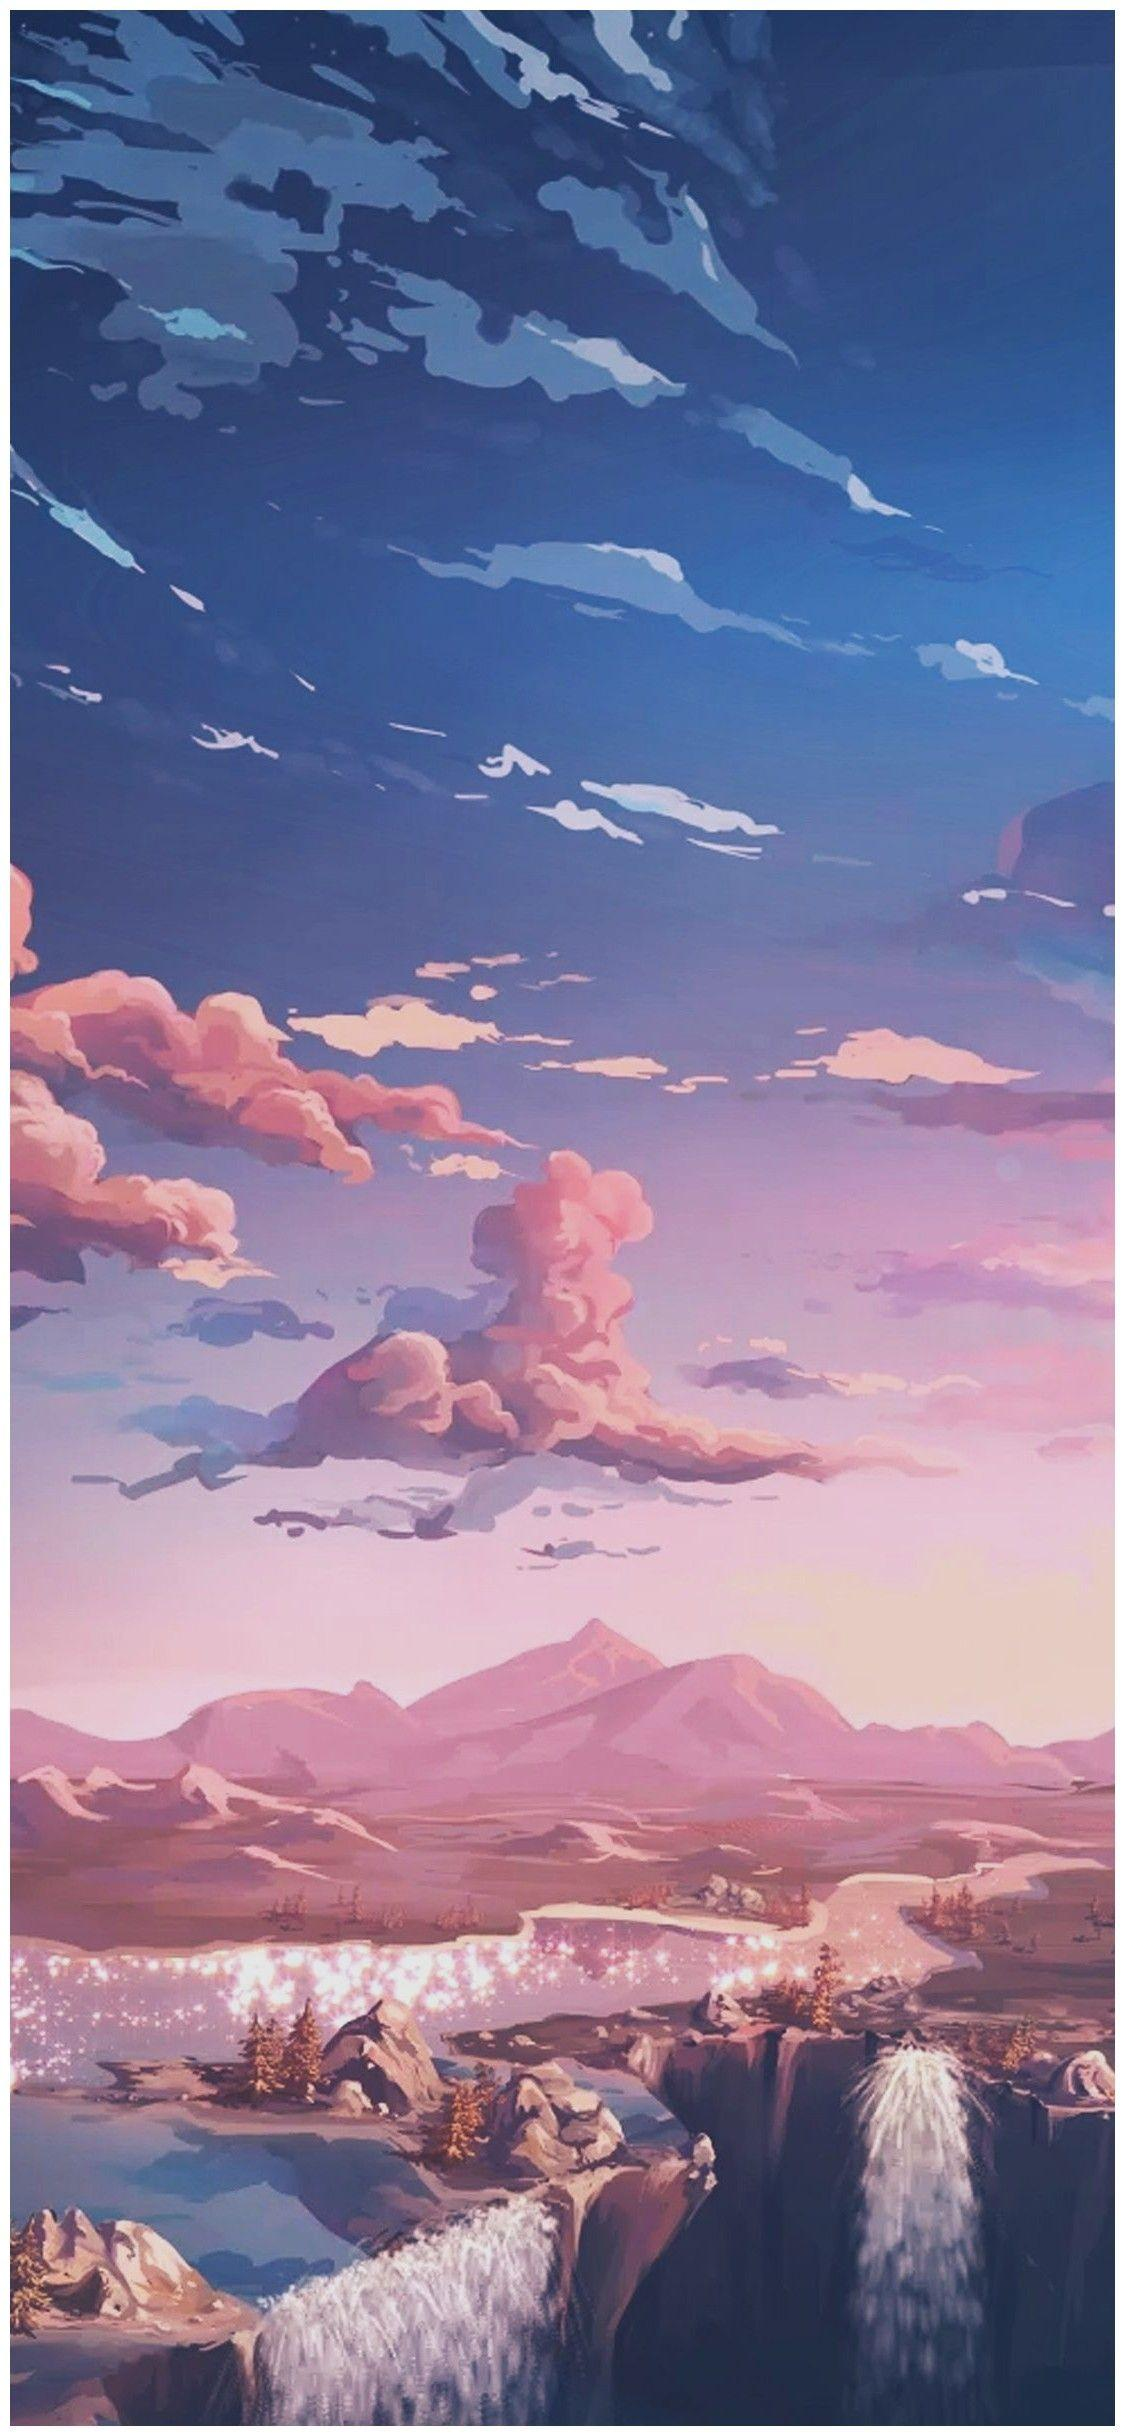 Aesthetic Anime Wallpapers Wallpaper Cave